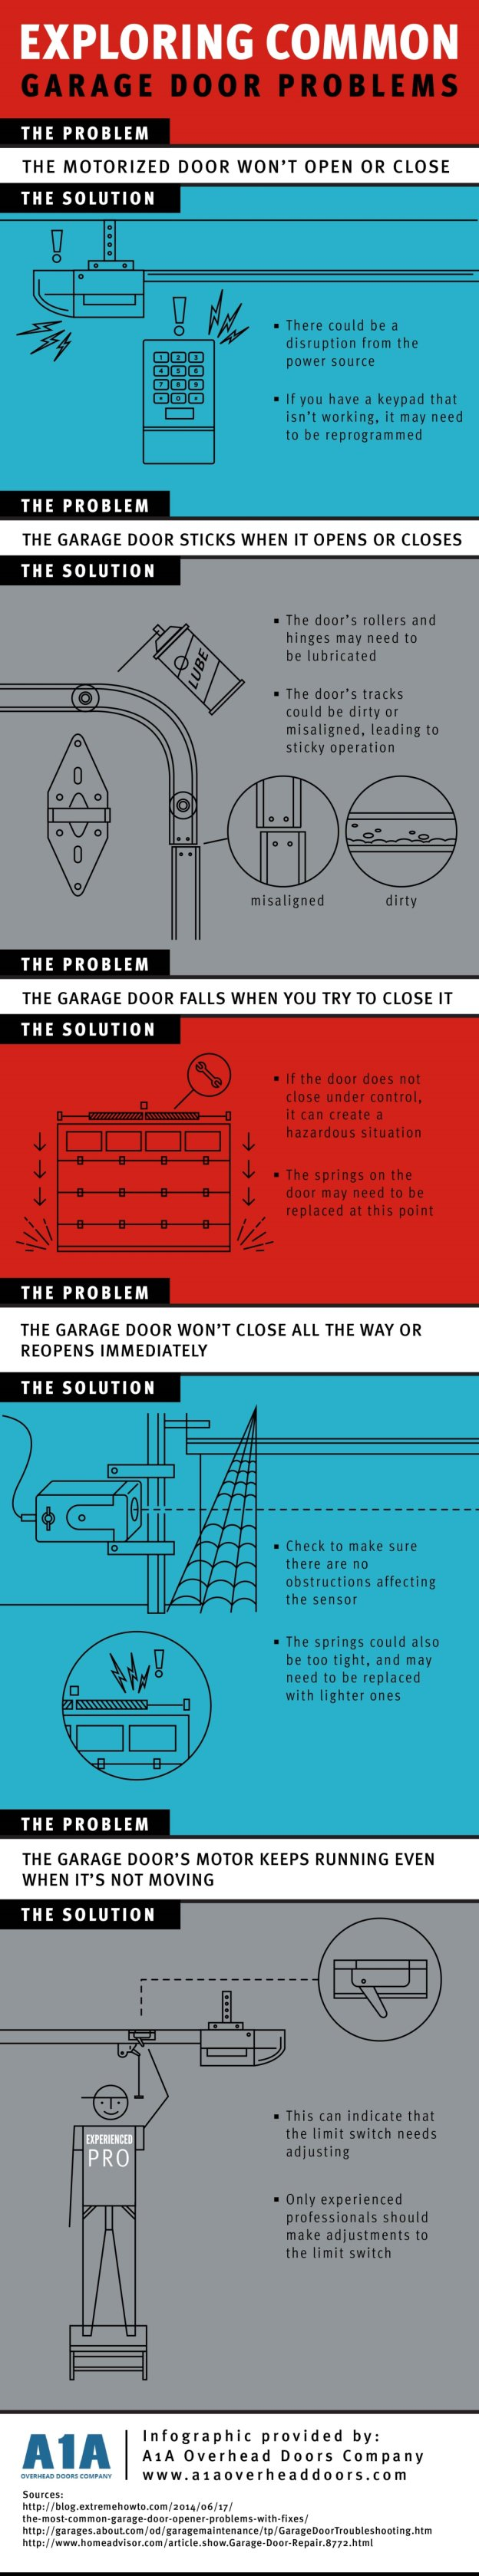 Exploring Common Garage Door Problems Infographic A1a Overhead